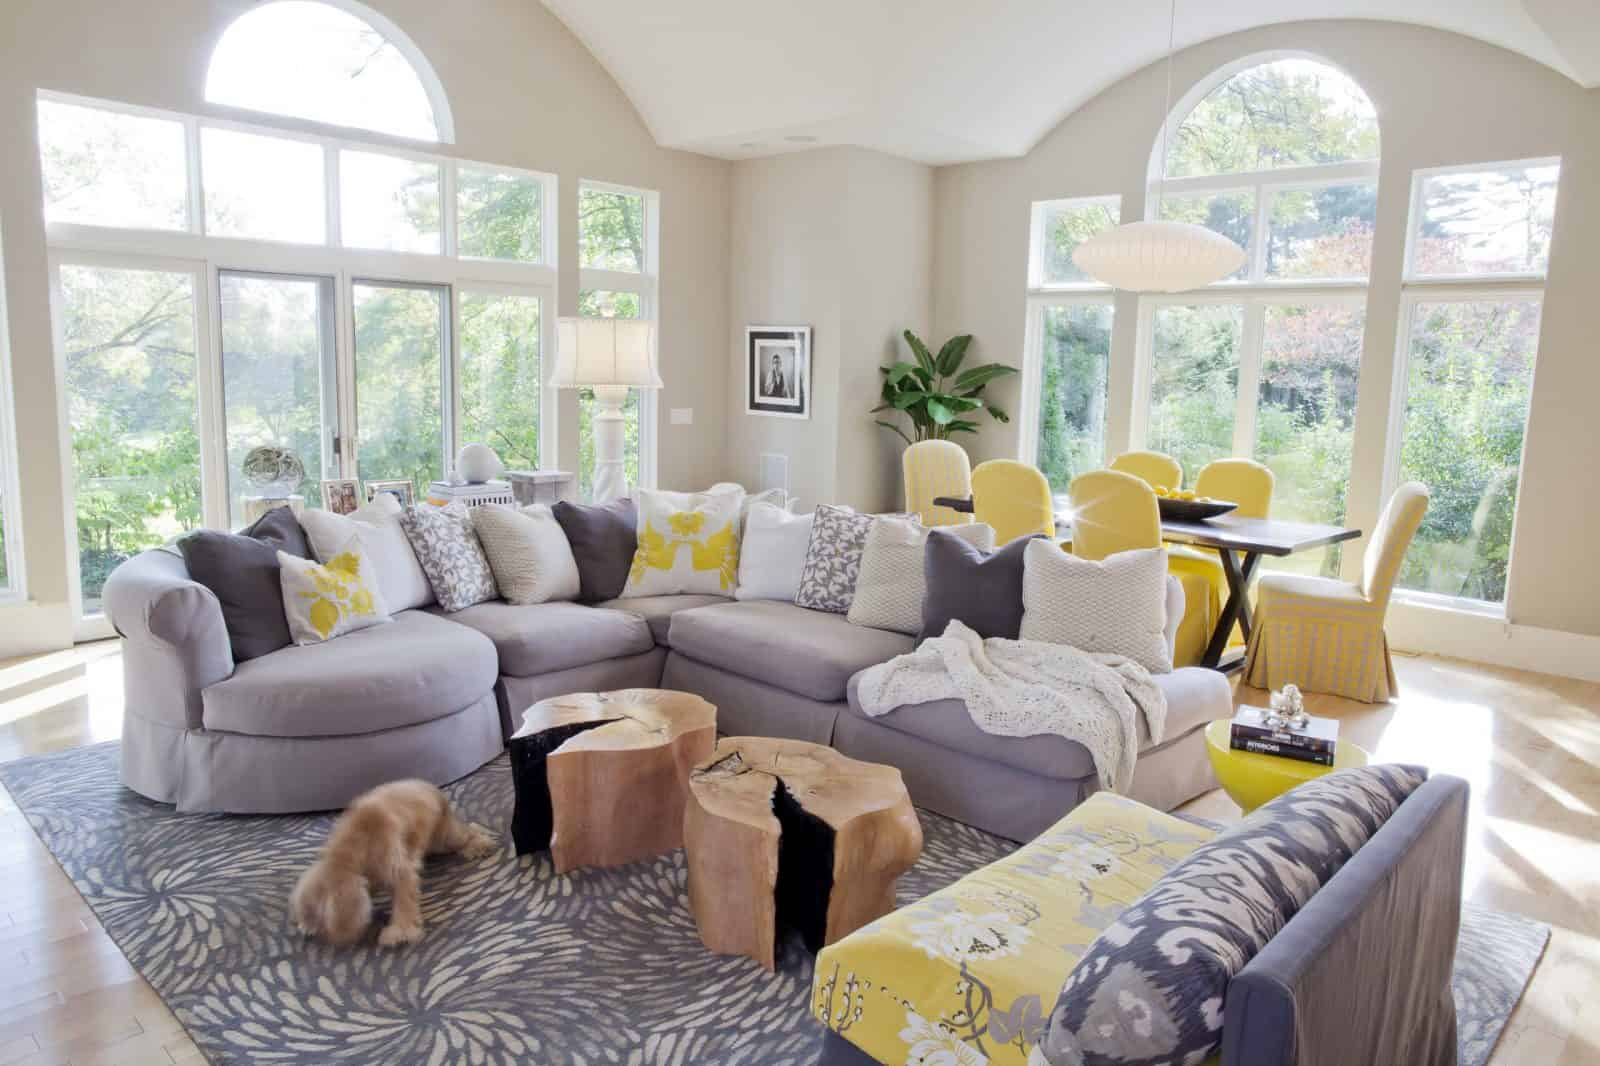 11 Most Stunning Grey And Yellow Living Room Ideas To Try This Summer Jimenezphoto